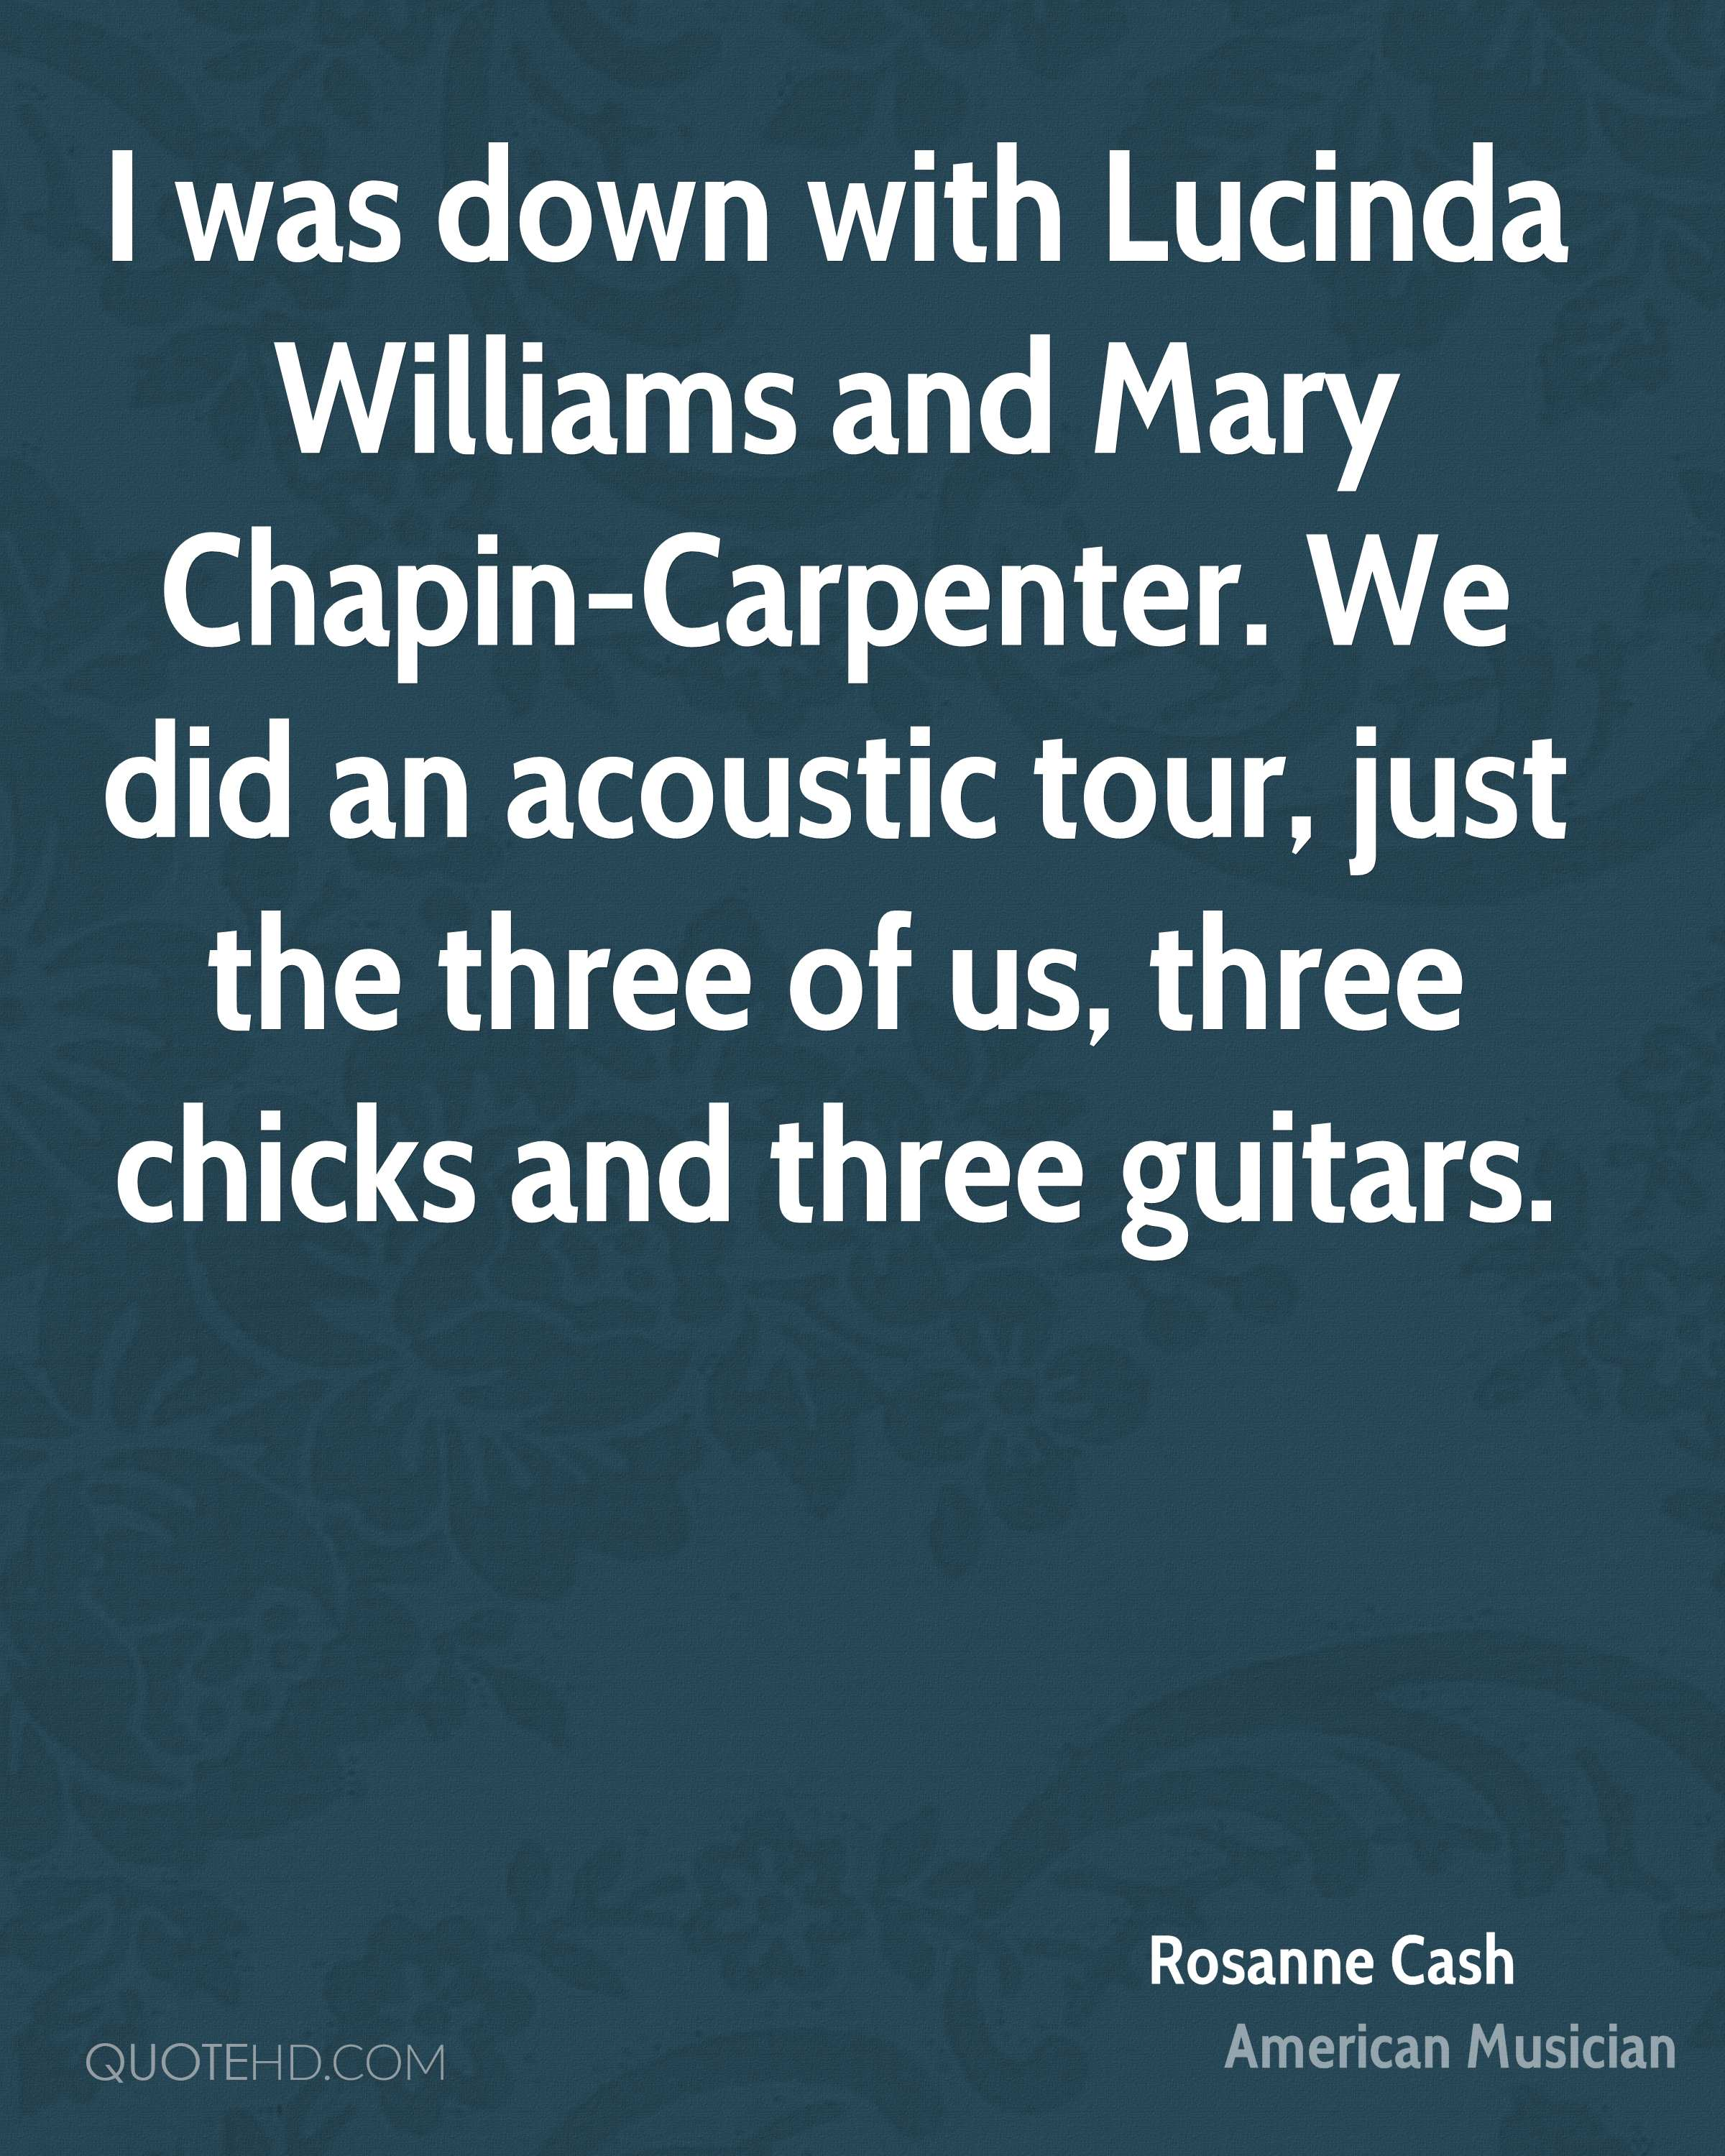 I was down with Lucinda Williams and Mary Chapin-Carpenter. We did an acoustic tour, just the three of us, three chicks and three guitars.